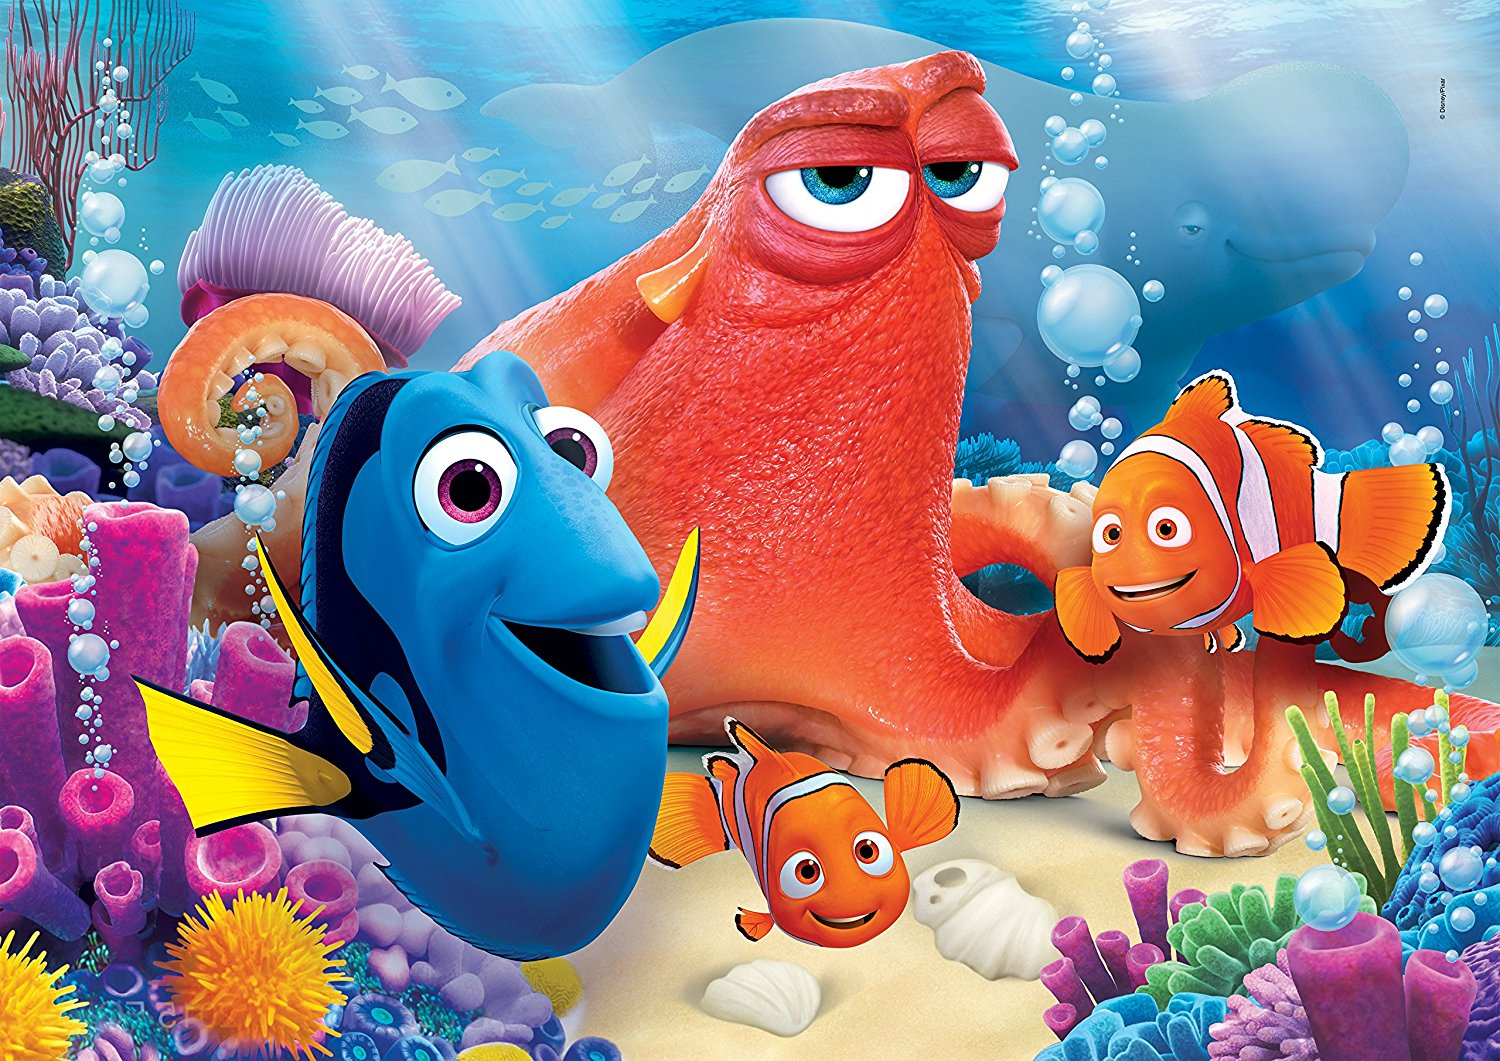 xxl-teile-finding-dory